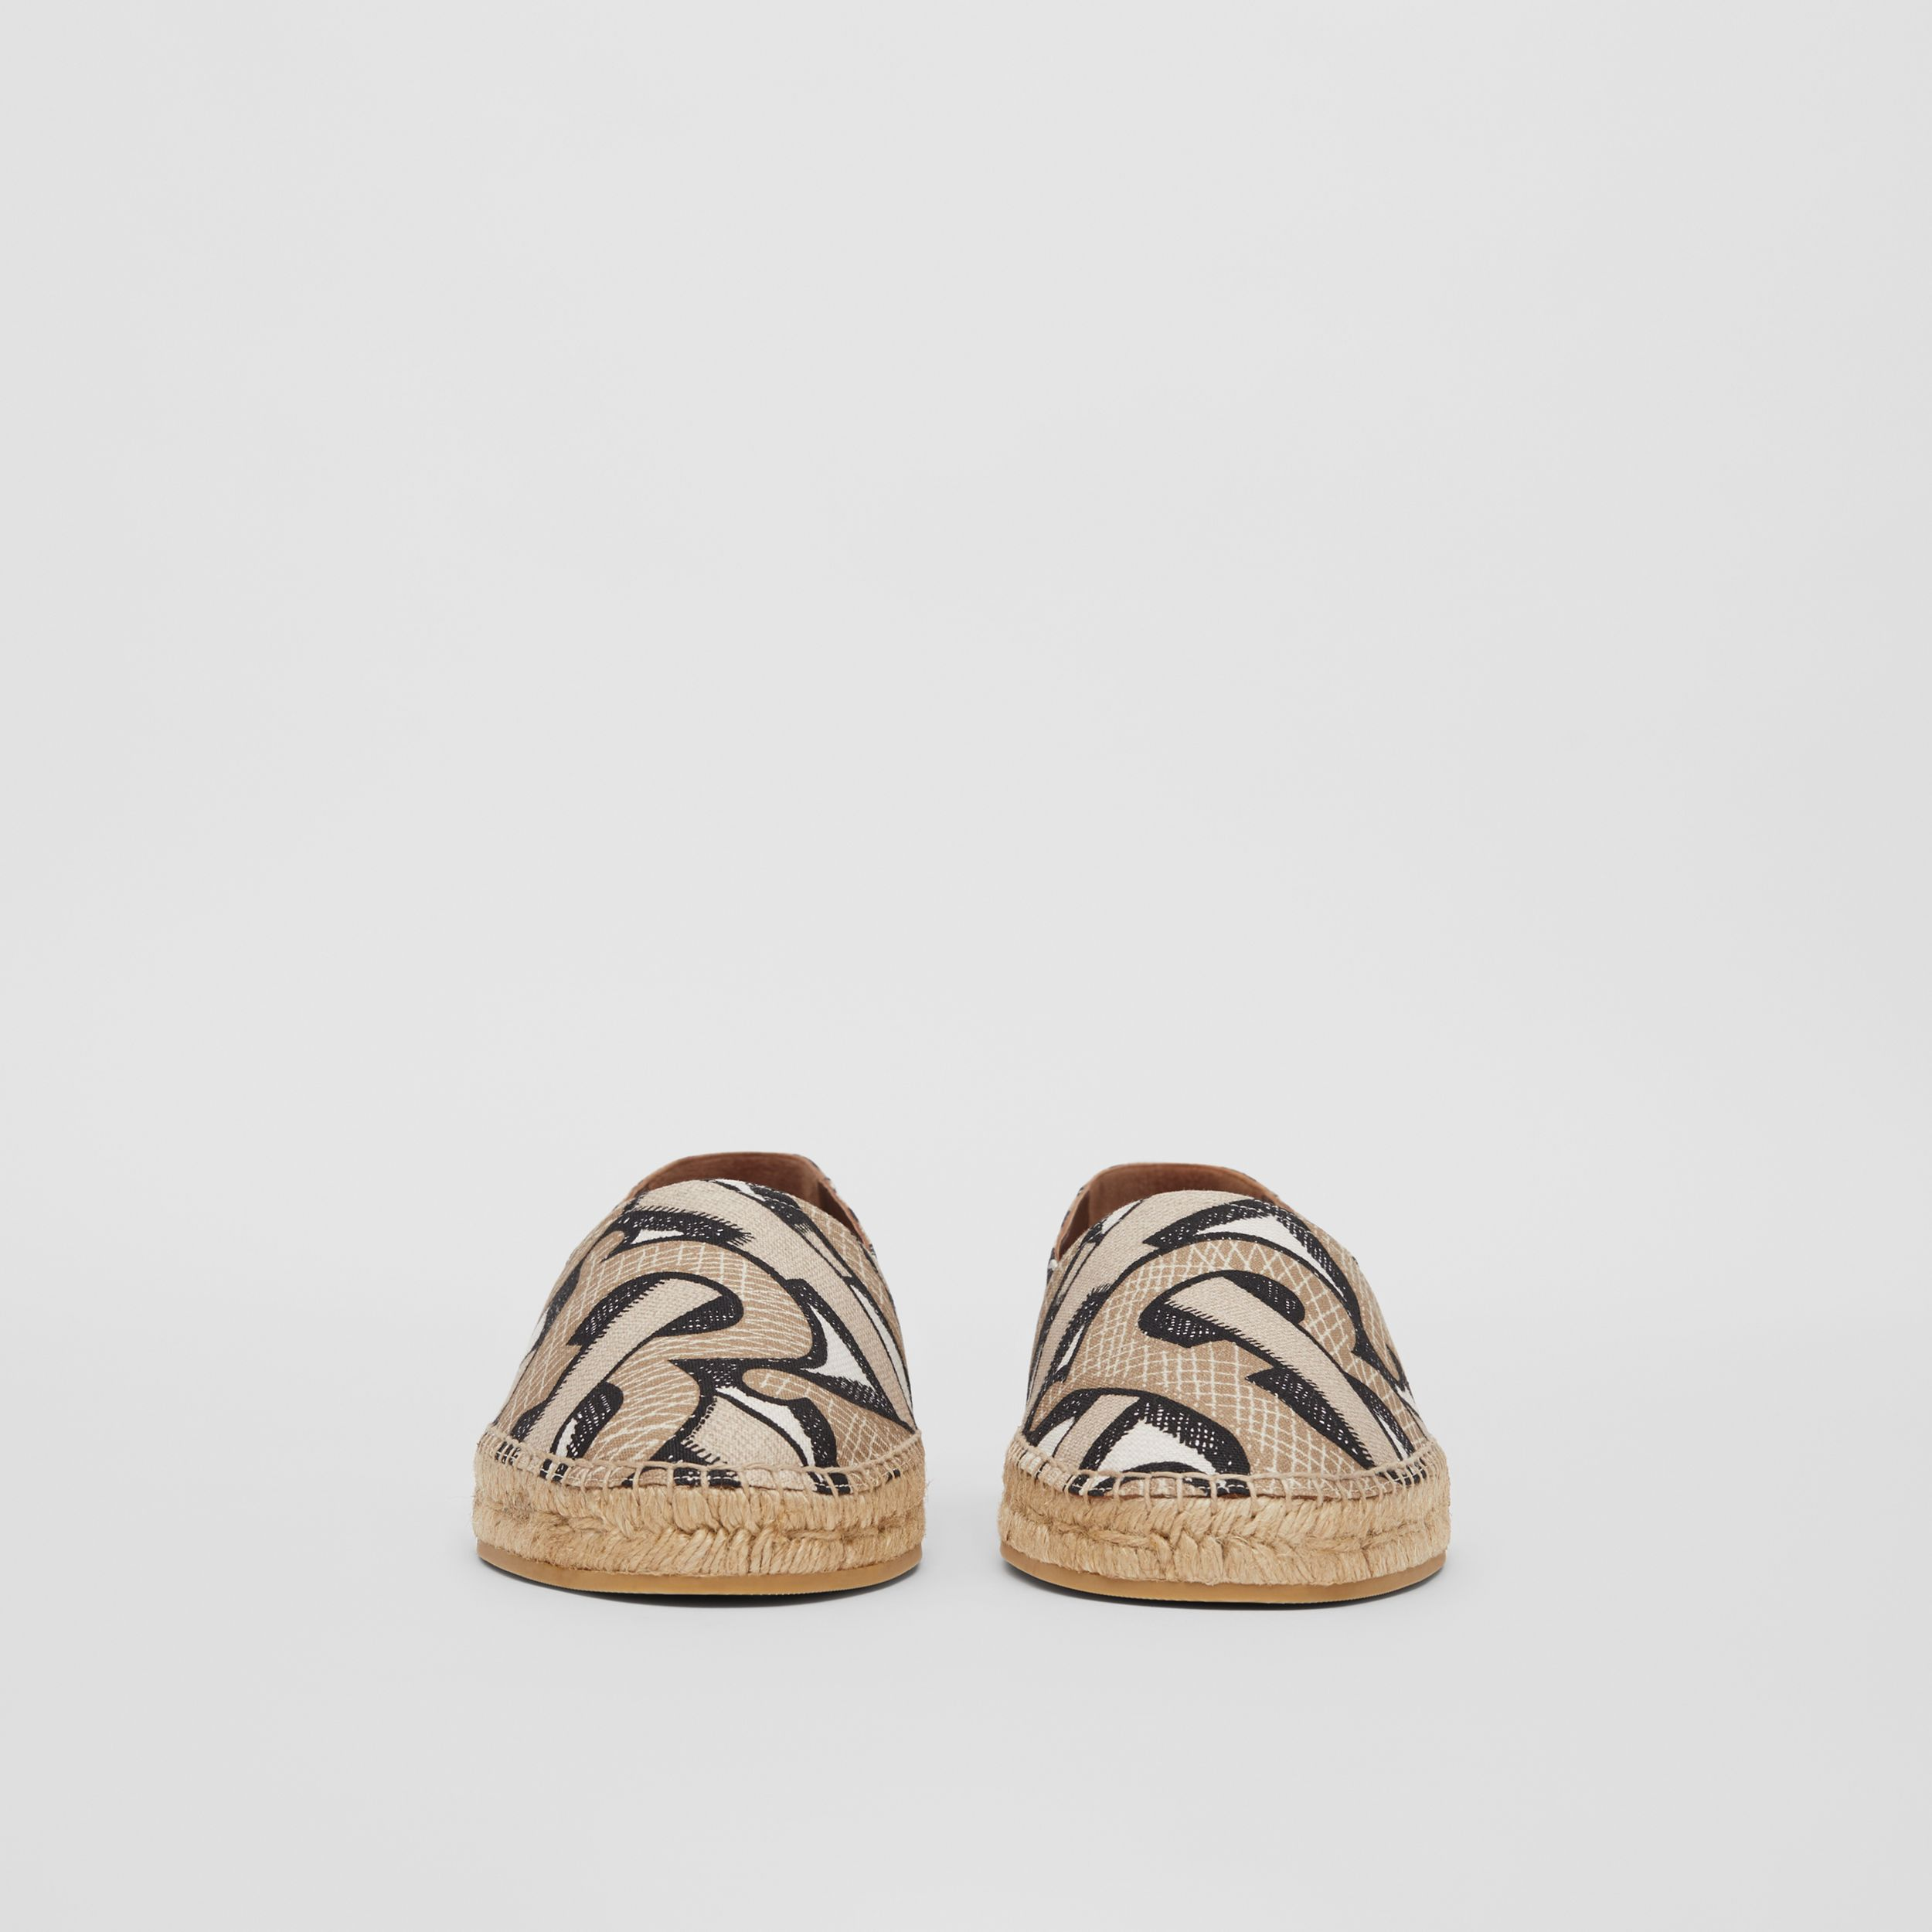 Monogram Print Cotton Canvas Espadrilles in Dark Beige | Burberry Canada - 4